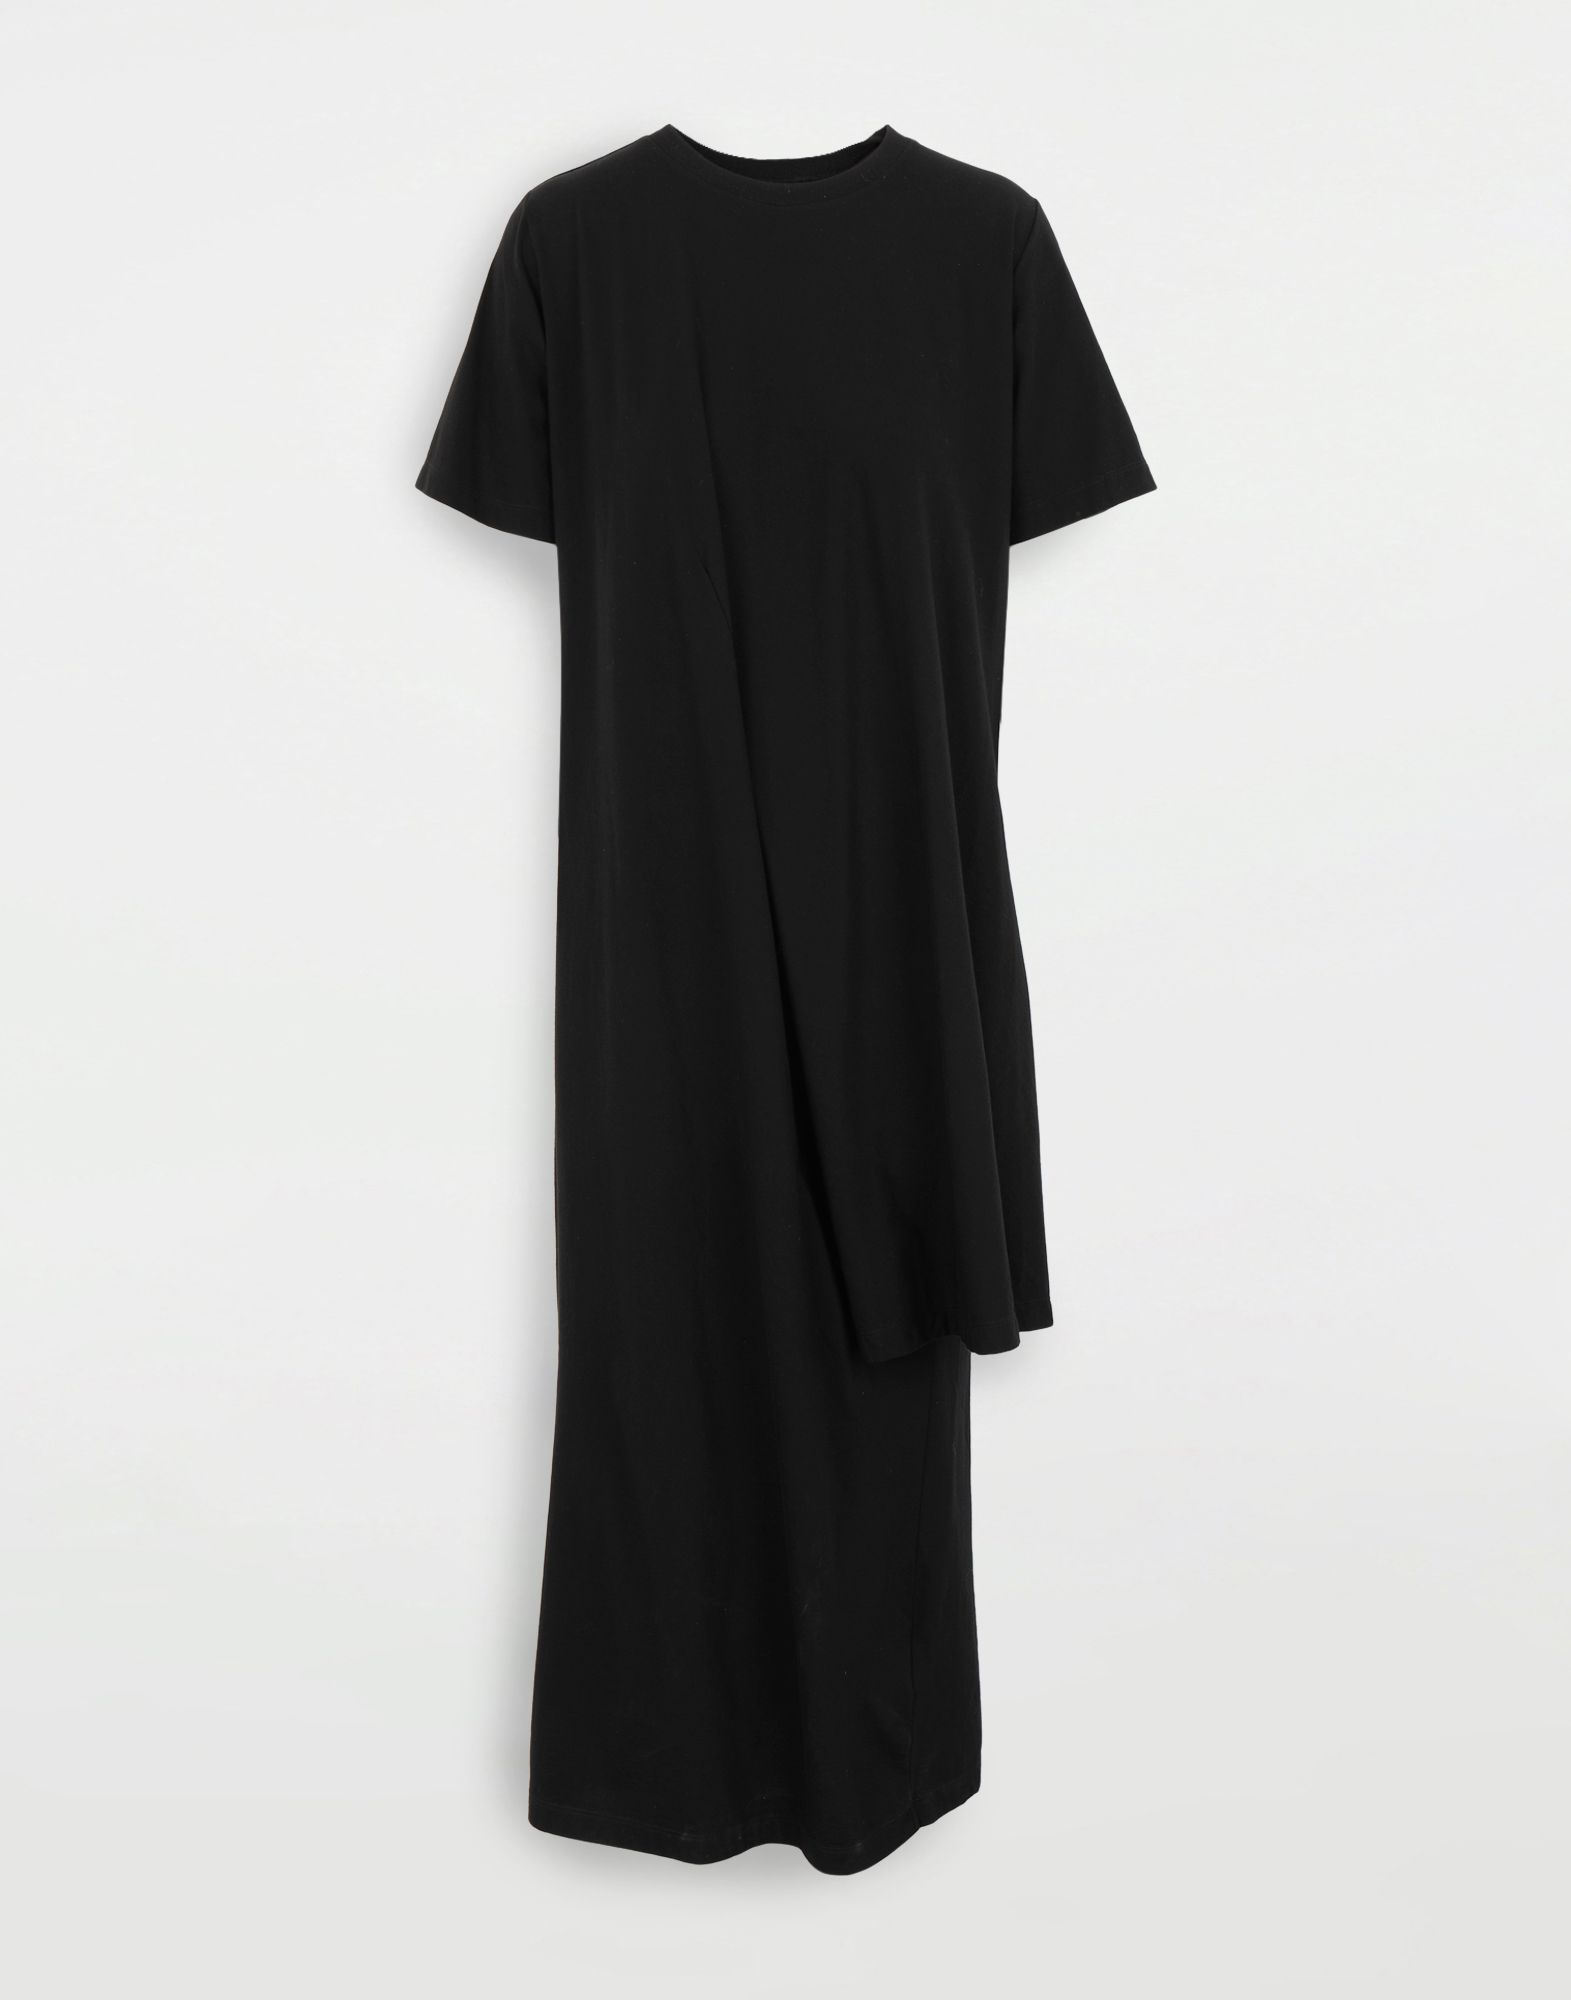 MM6 MAISON MARGIELA Layer dress 3/4 length dress Woman f